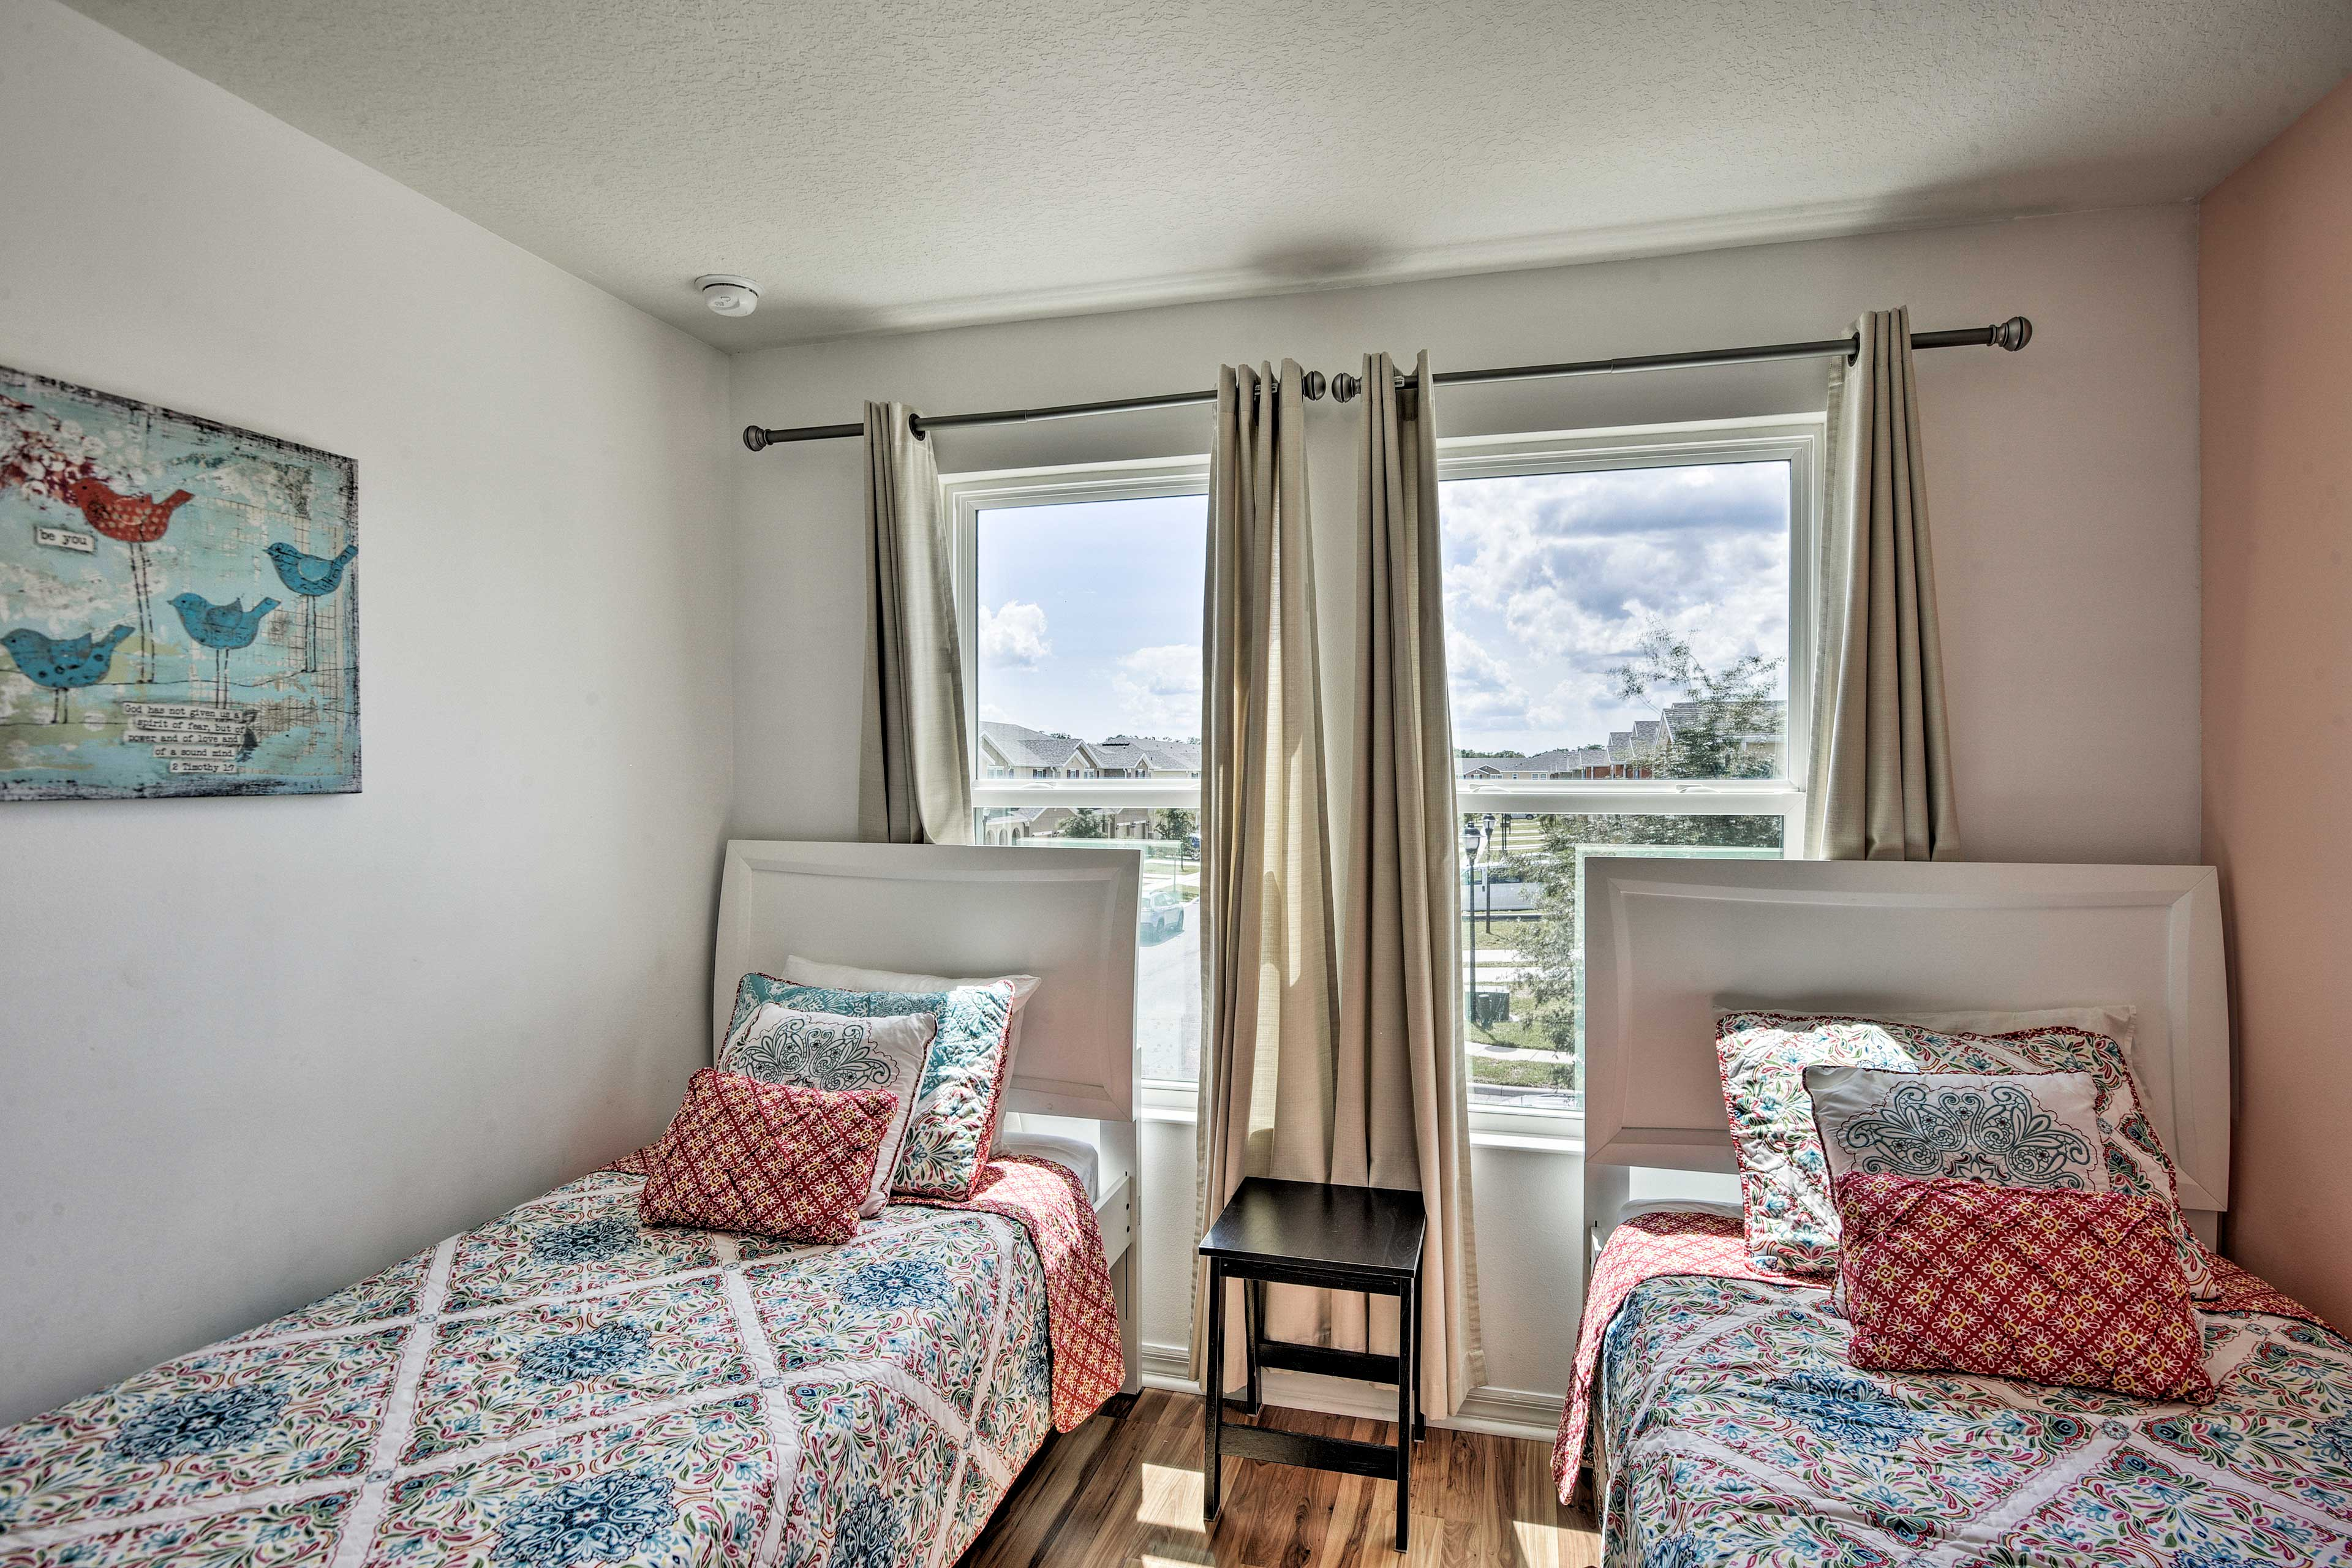 The last bedroom also offers a set of twin beds.